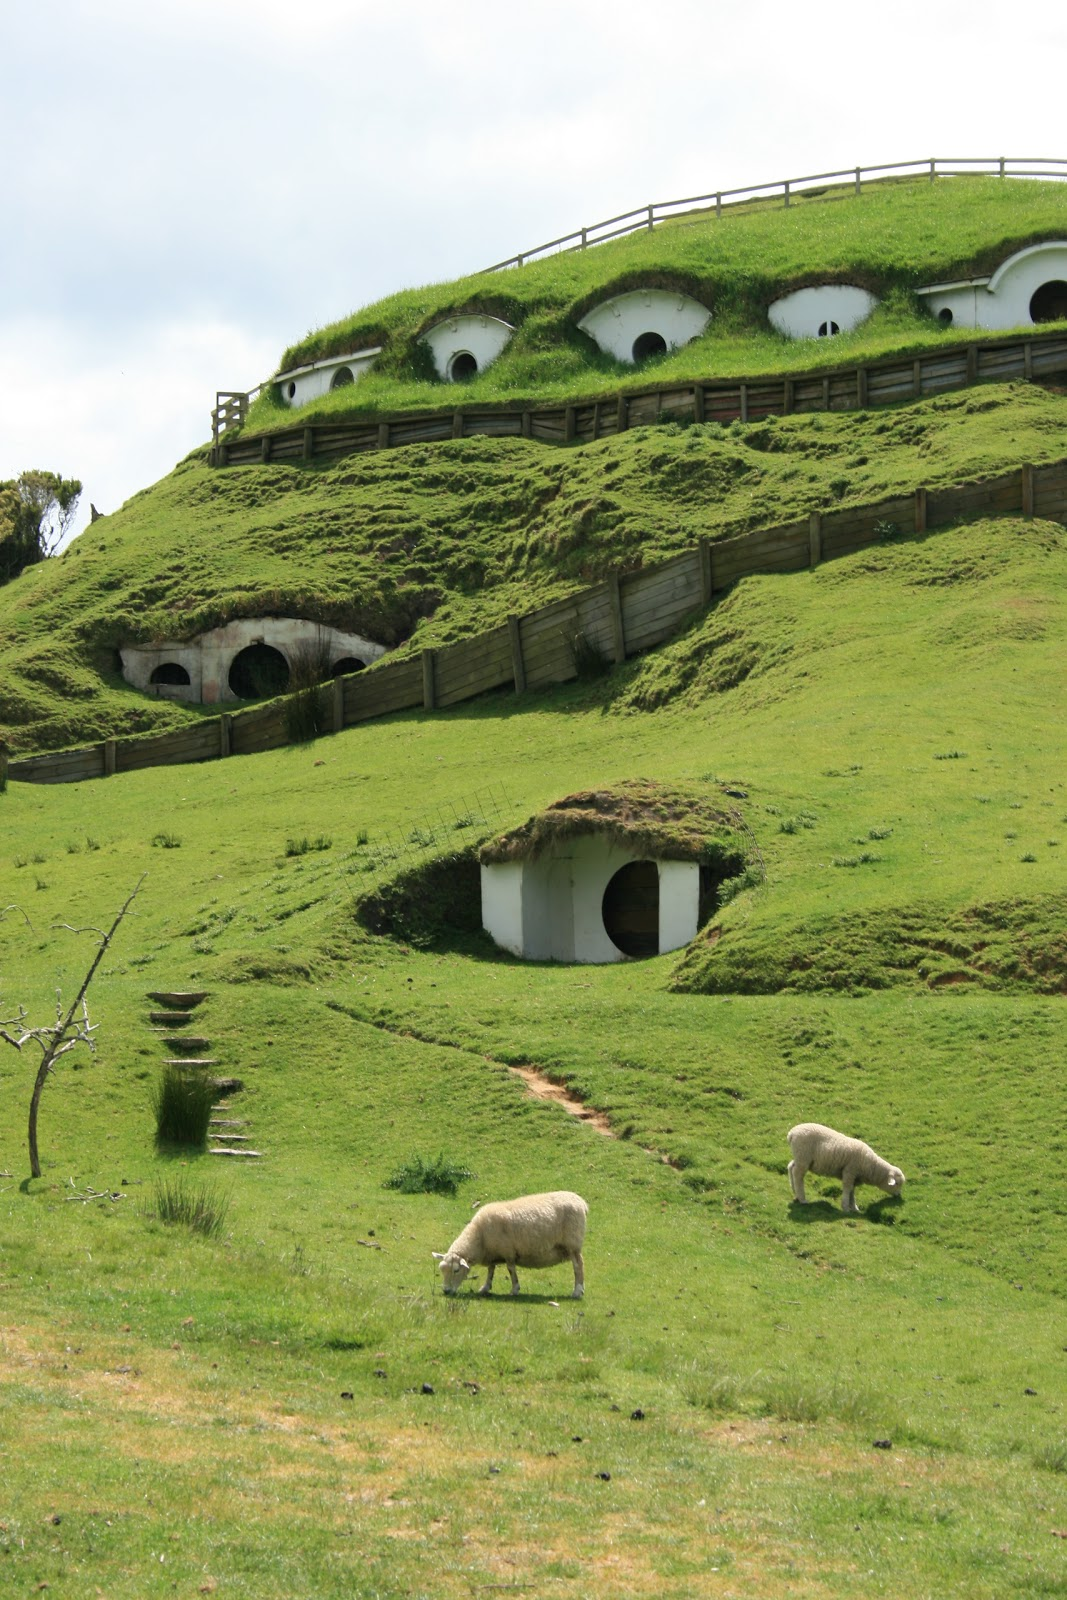 Hobbit Houses in Matamata, New Zealand.